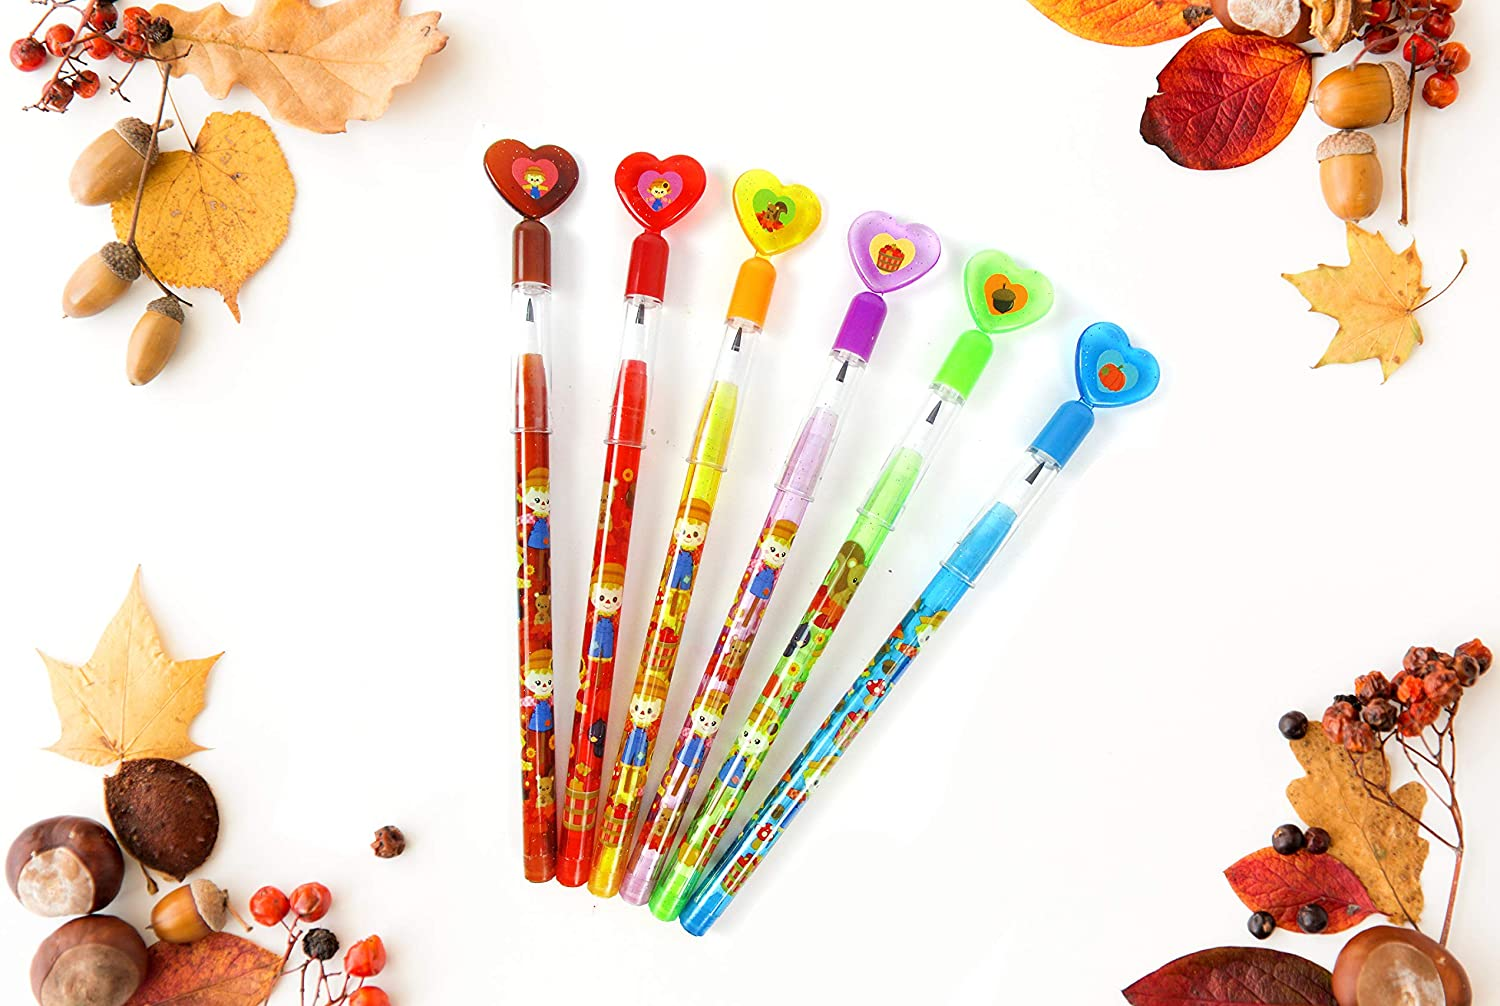 TINYMILLS 24 Pcs Fall Harvest Autumn Thanksgiving Multi Point Pencils Party Favors Goodie Bag Stuffers Carnival Prize Classroom Rewards